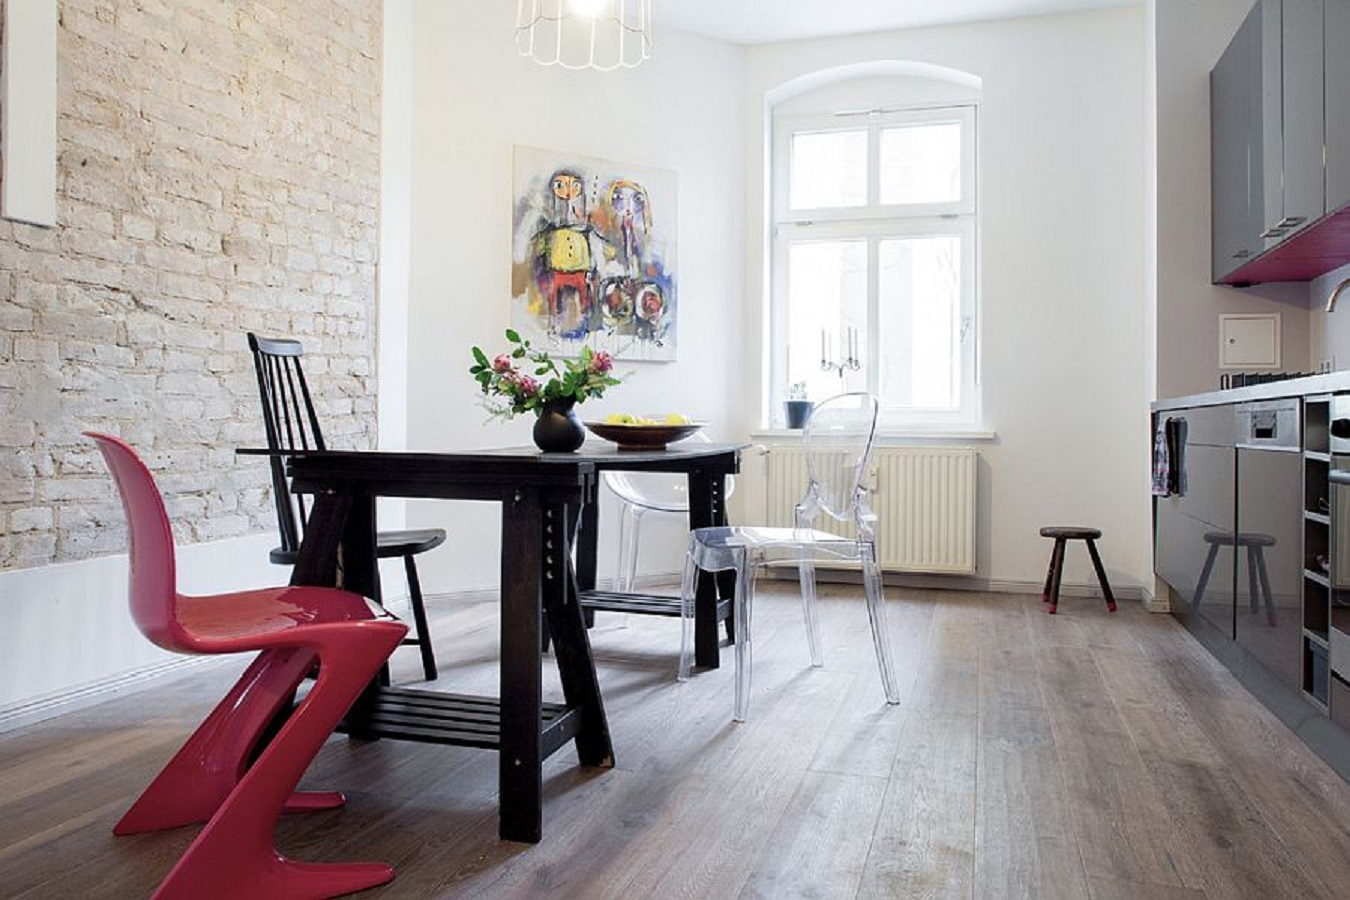 6 Magnificent White Dining Room Ideas Look Gorgeous With the Uniqueness Of Brick Walls